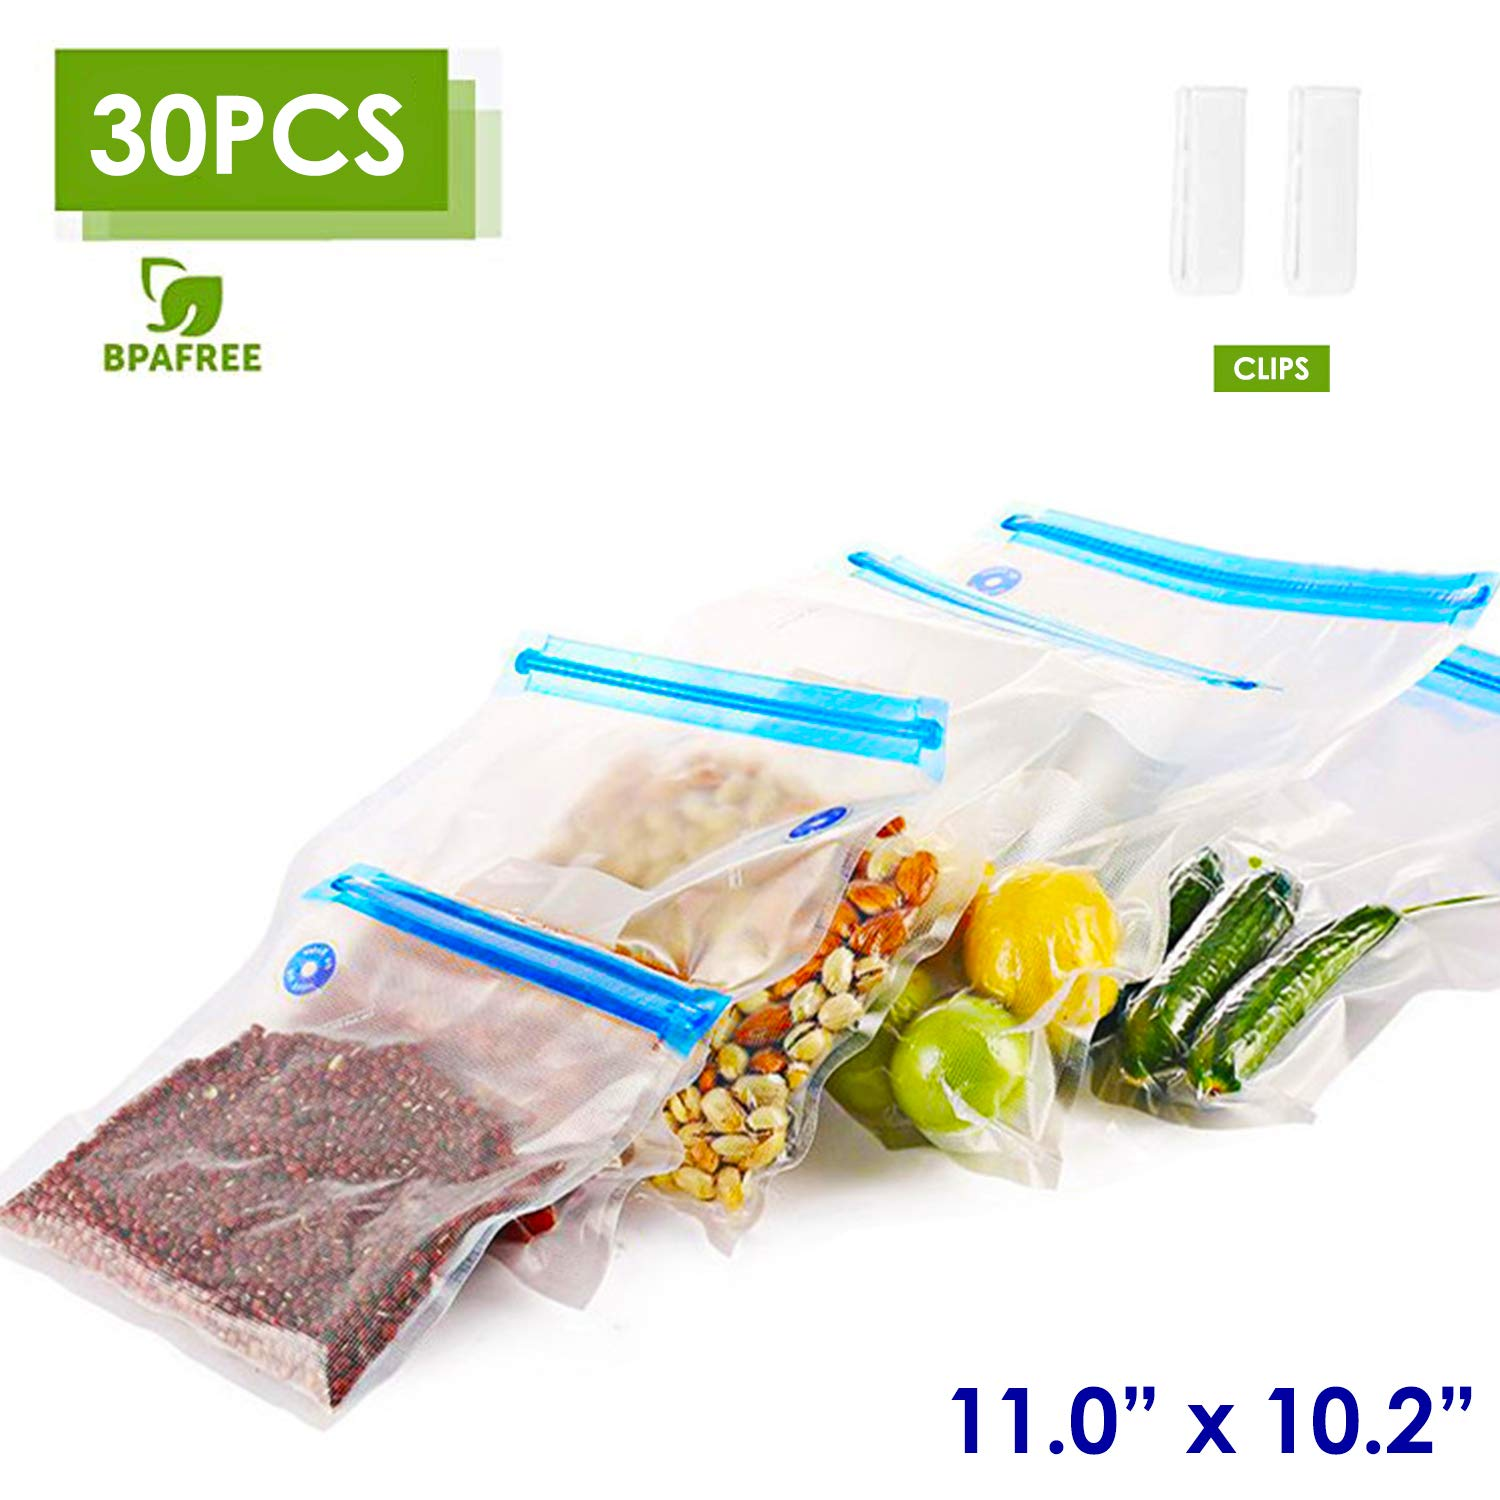 "VICARKO Quart Vacuum Sealer Bags Zipper Bags for Food Saver and Storage, compatible with VICARKO Handheld Vacuum Sealer Model VK9939 | 11.0"" * 10.2"", 30-Pack, Medium"